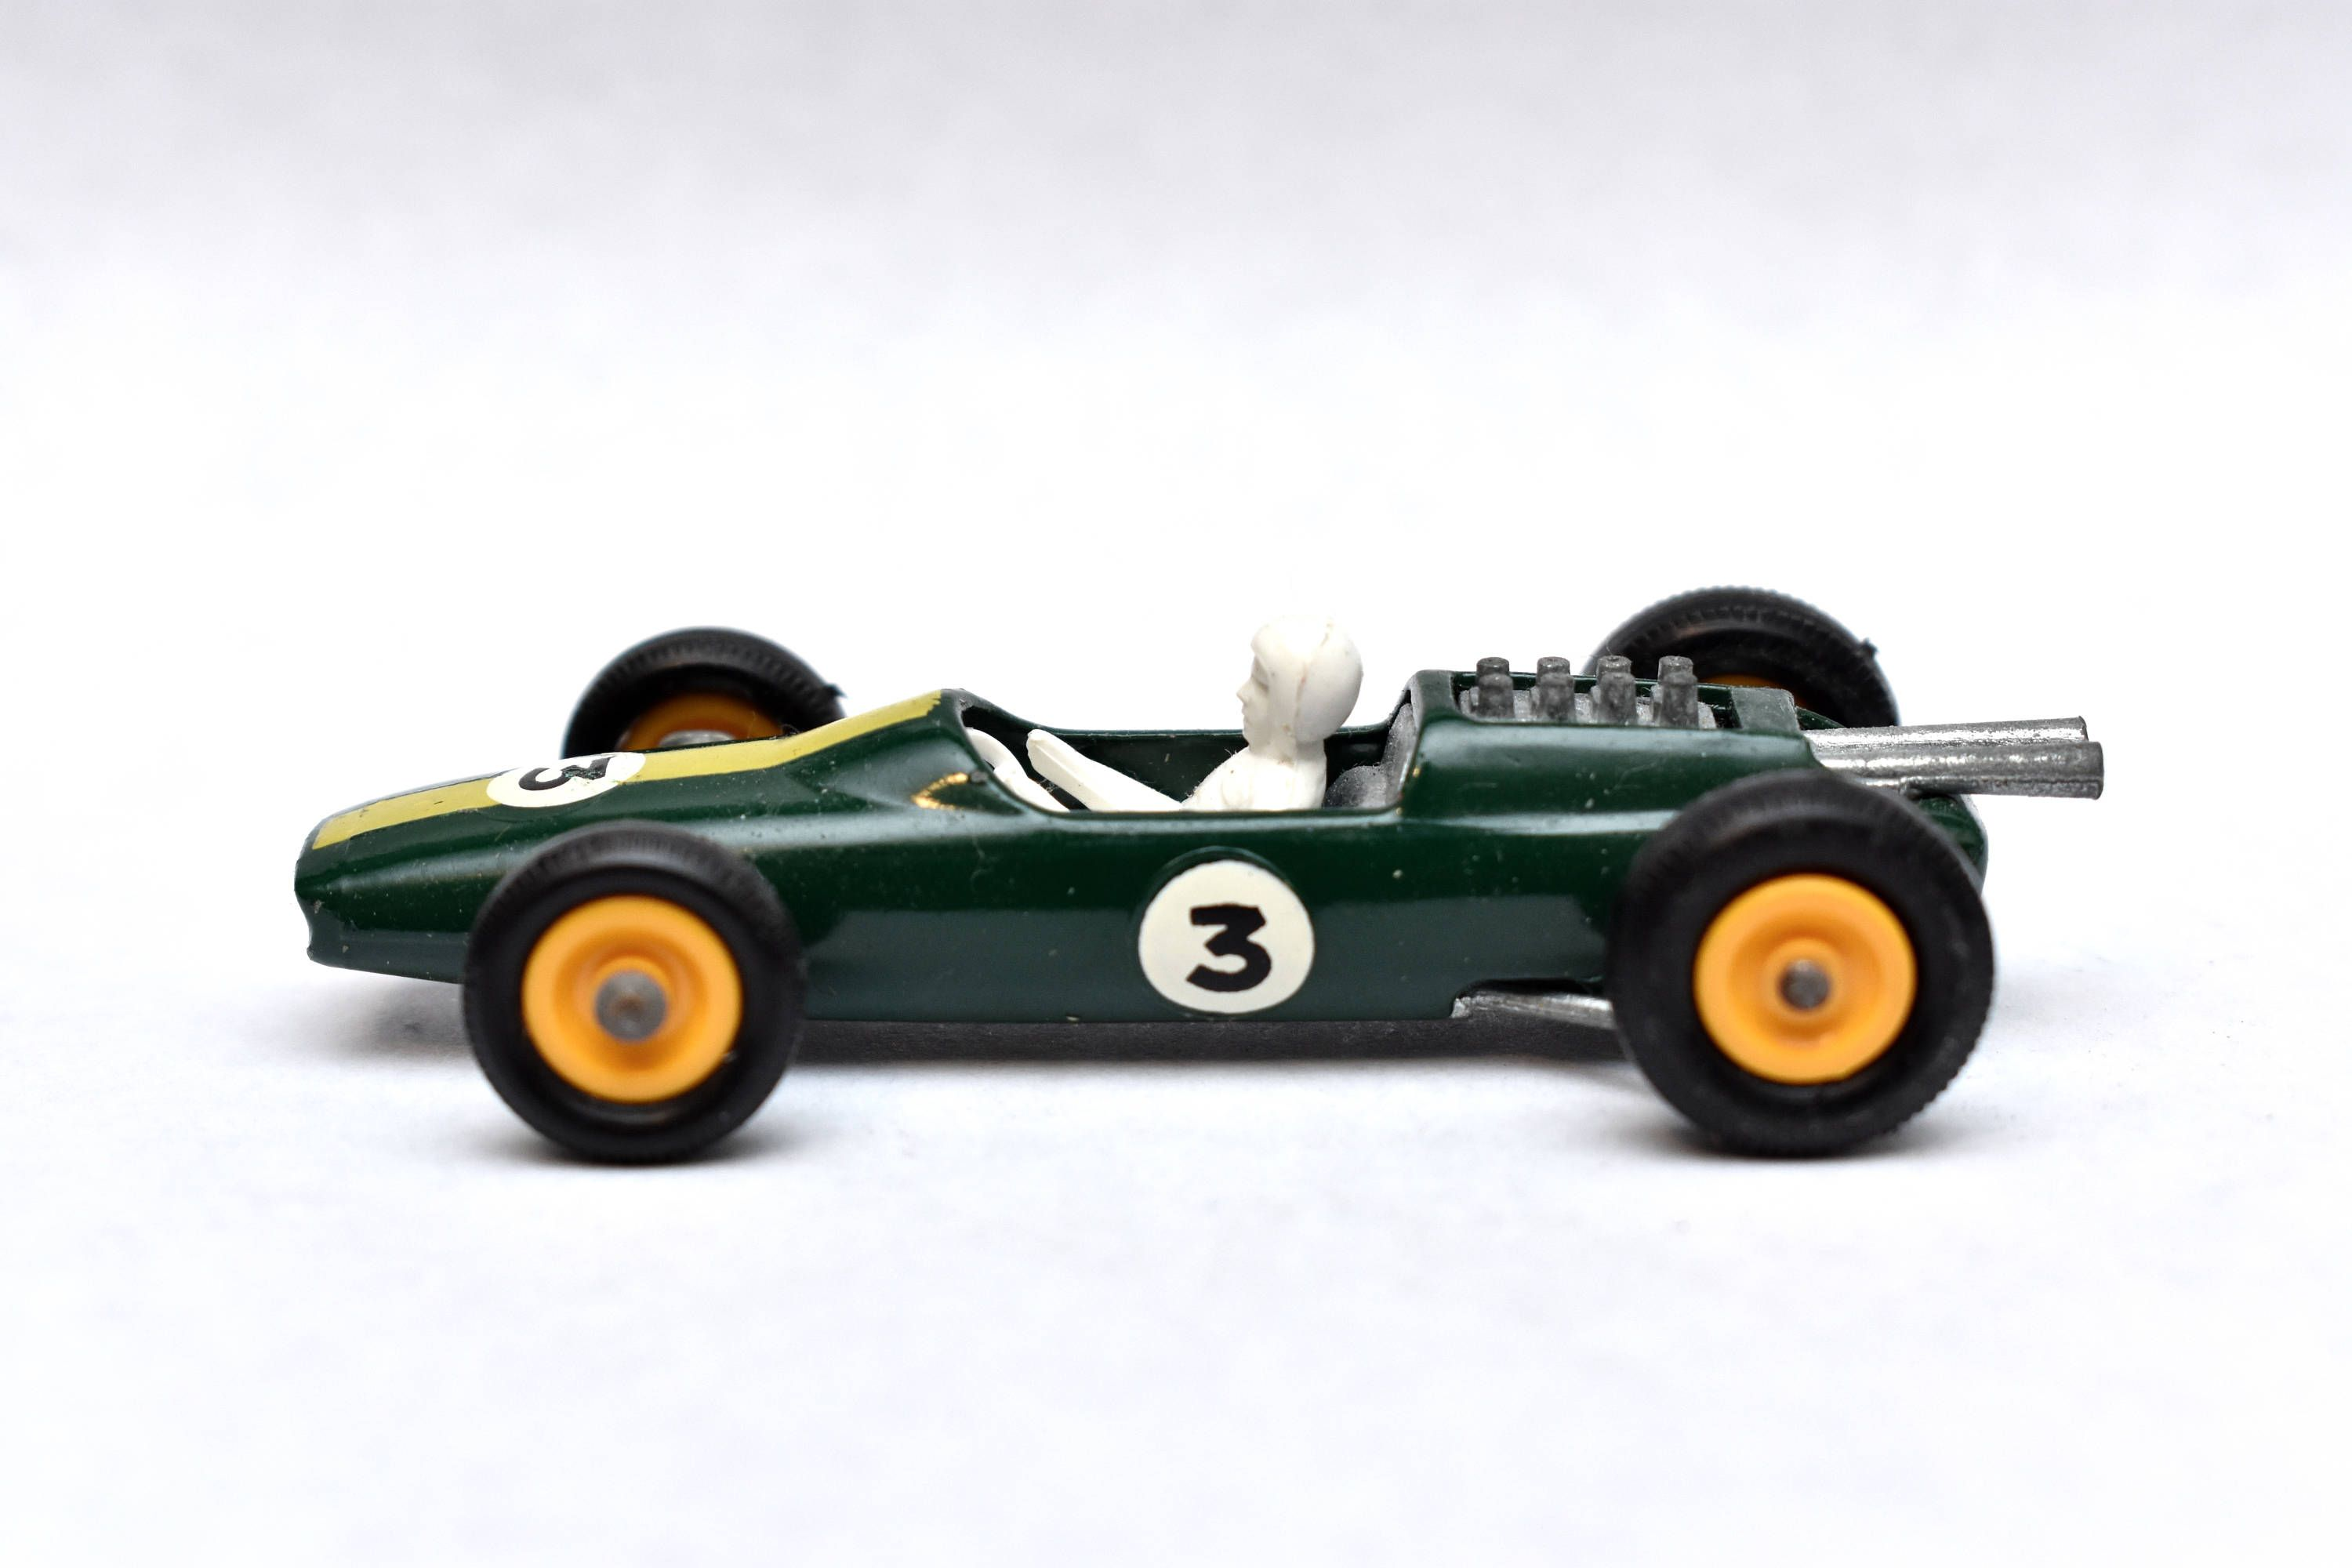 19 Lotus F1 Racing Car Green 1960 S Made In England Original Vintage Cast Toy Collection By Rememberwhentoys On Etsy